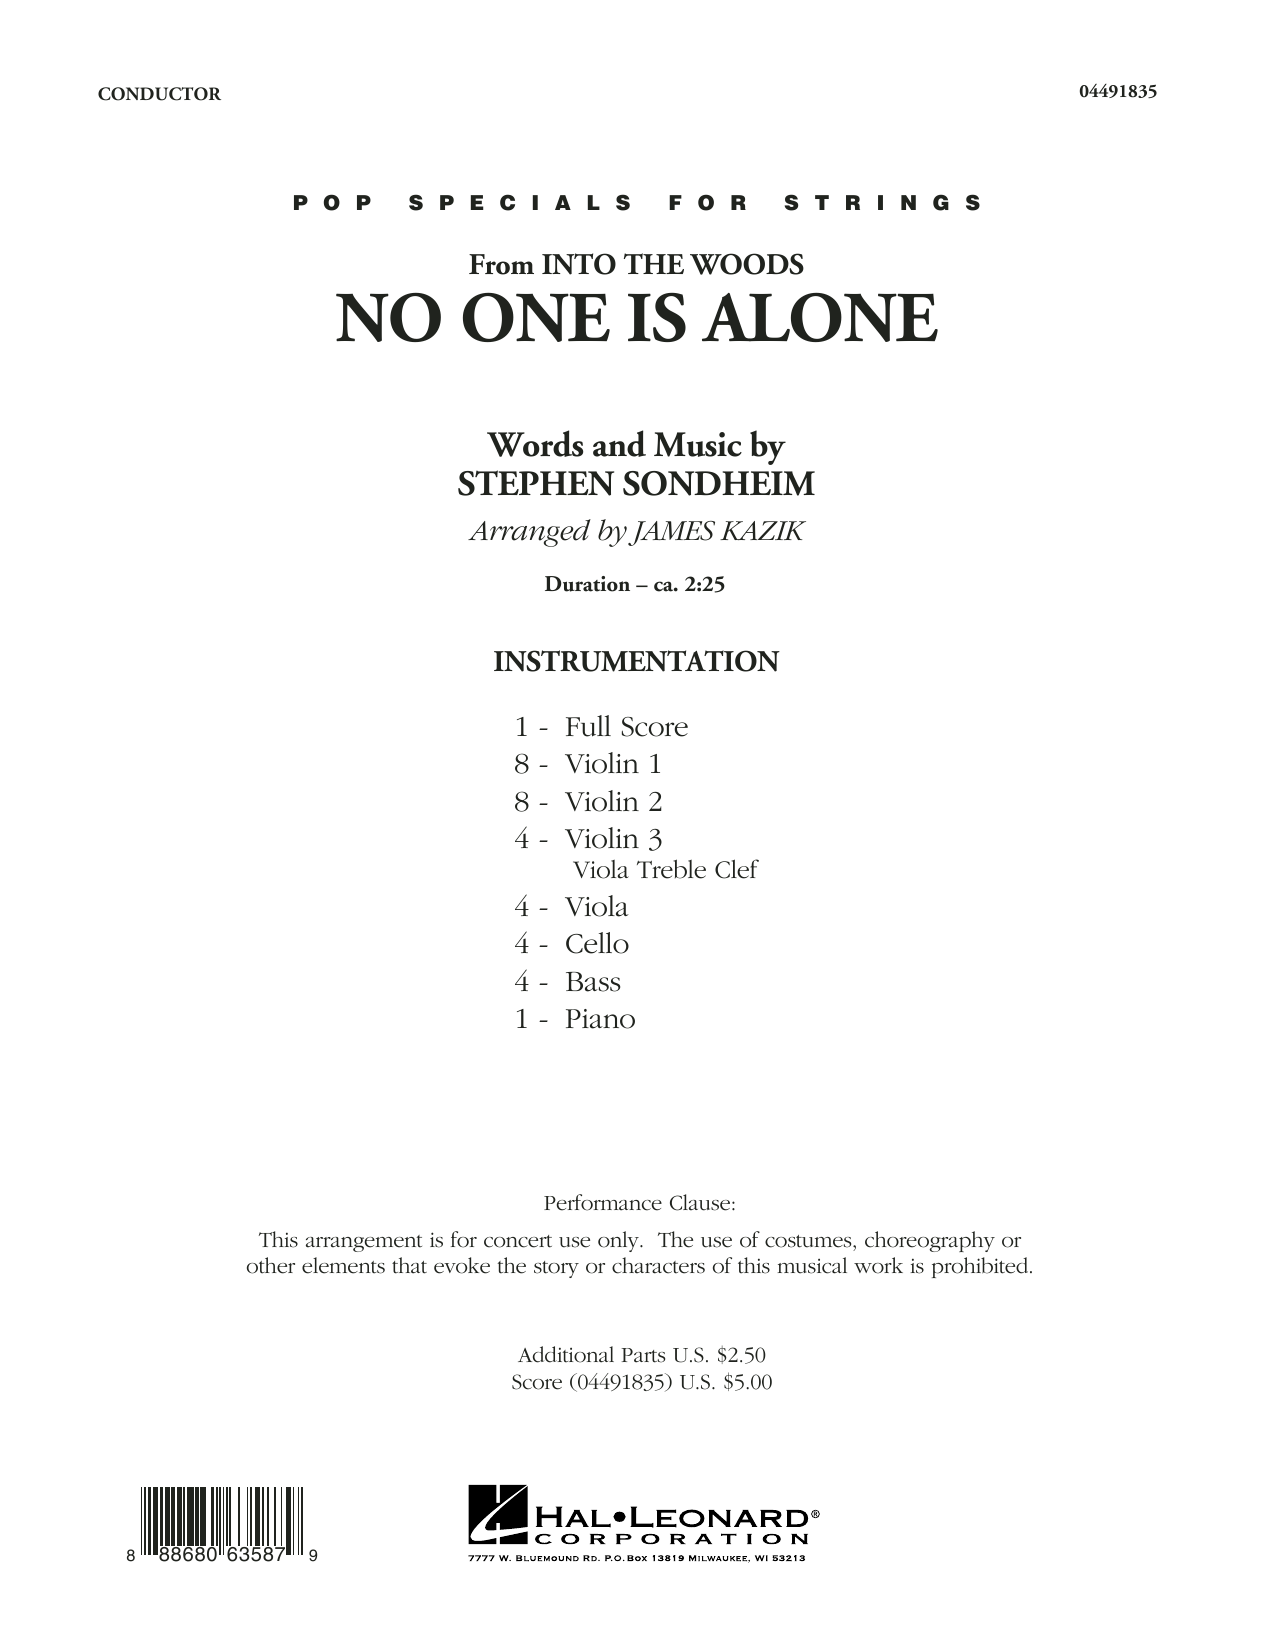 No One Is Alone (from Into The Woods) - Conductor Score (Full Score)